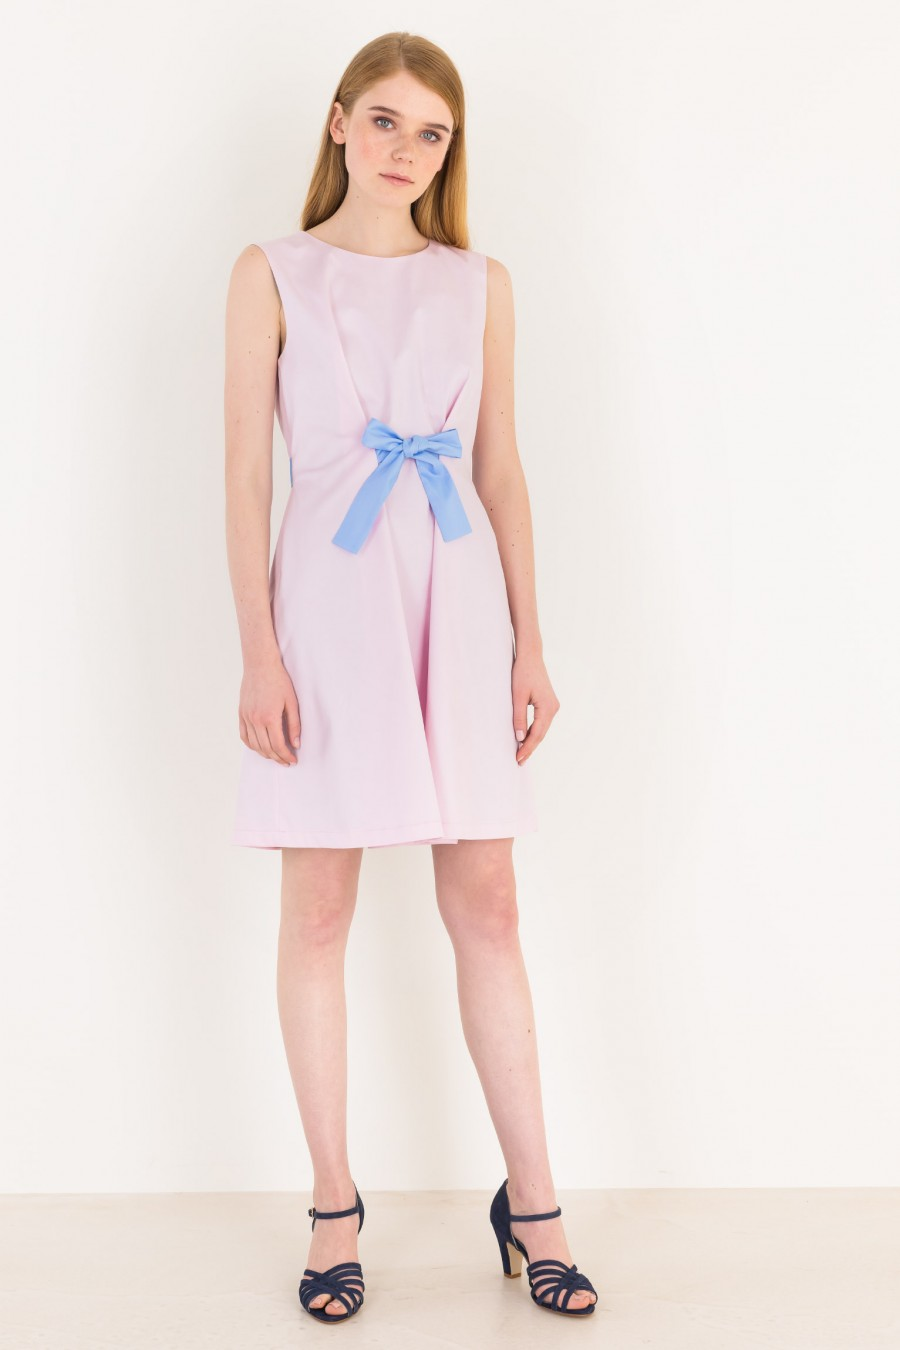 Pink a-line dress with ribbon